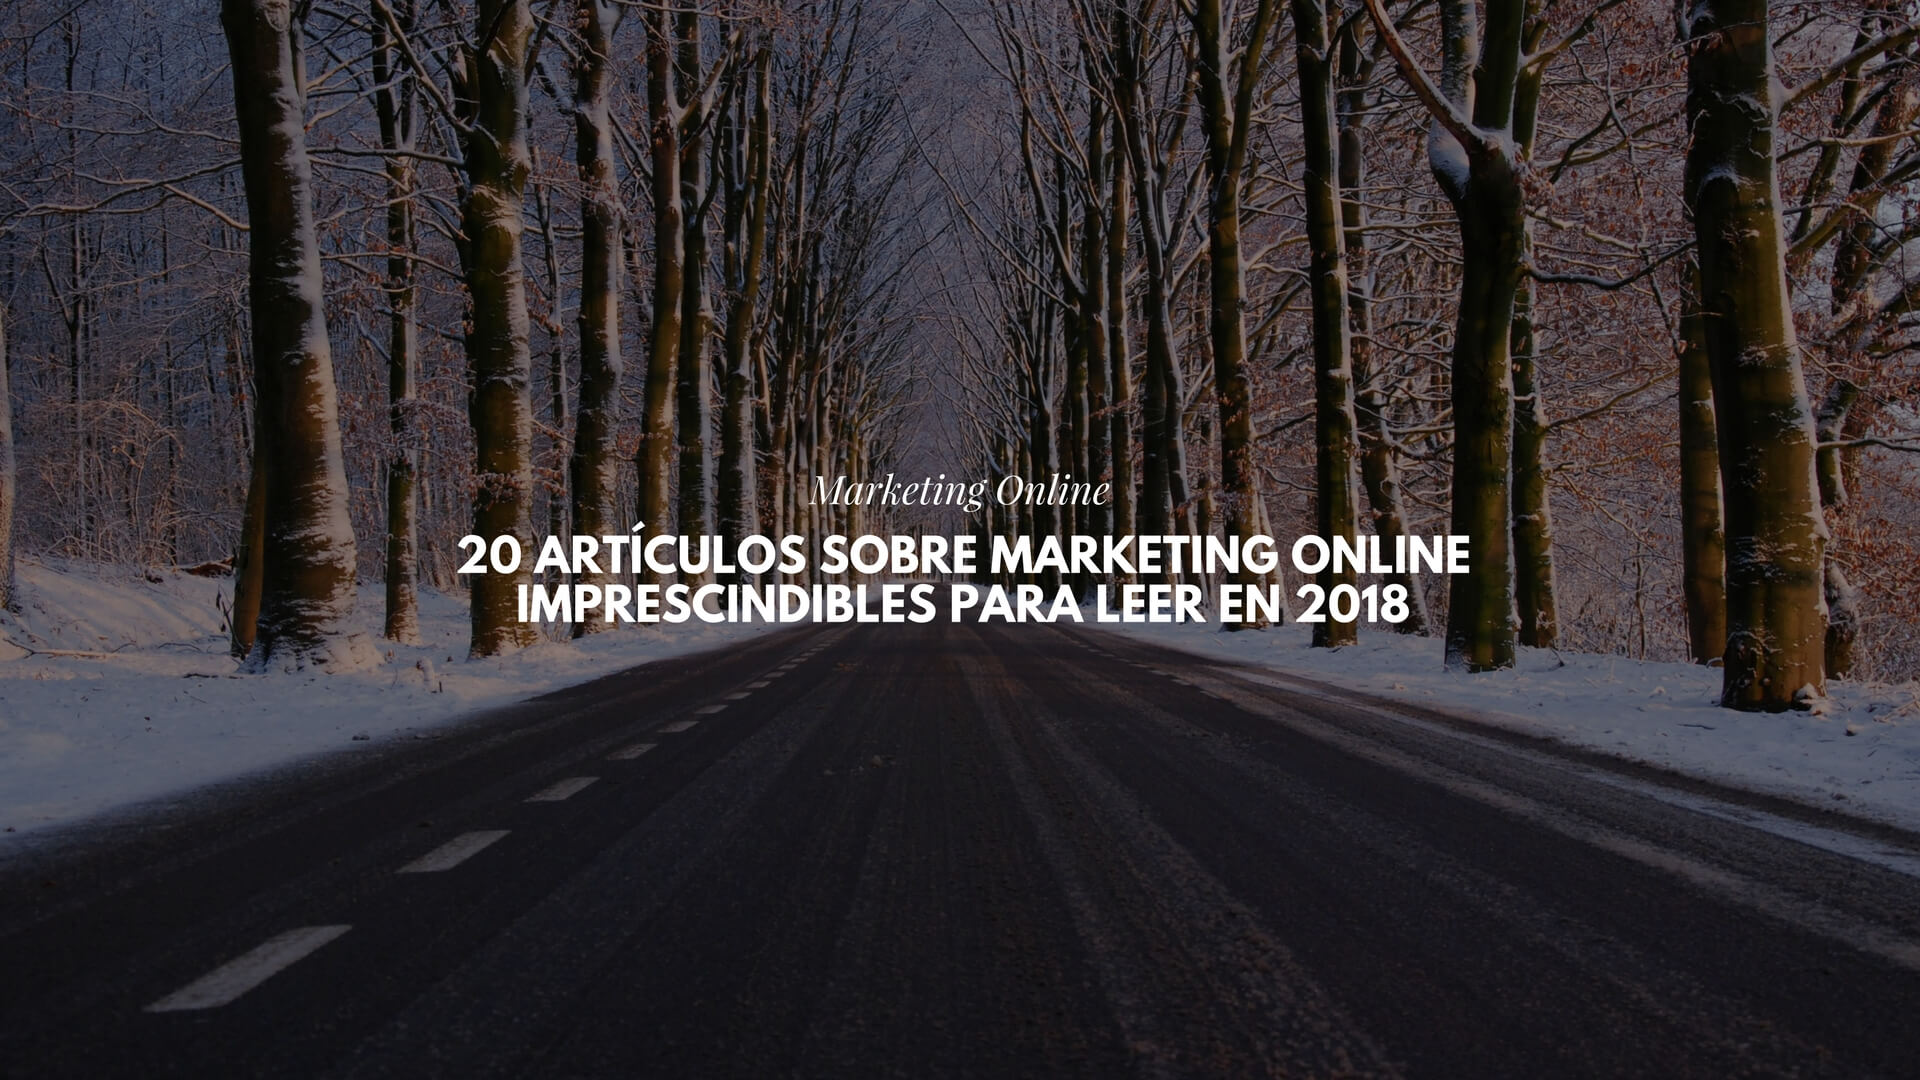 20 artículos sobre Marketing Online imprescindibles para leer en 2018